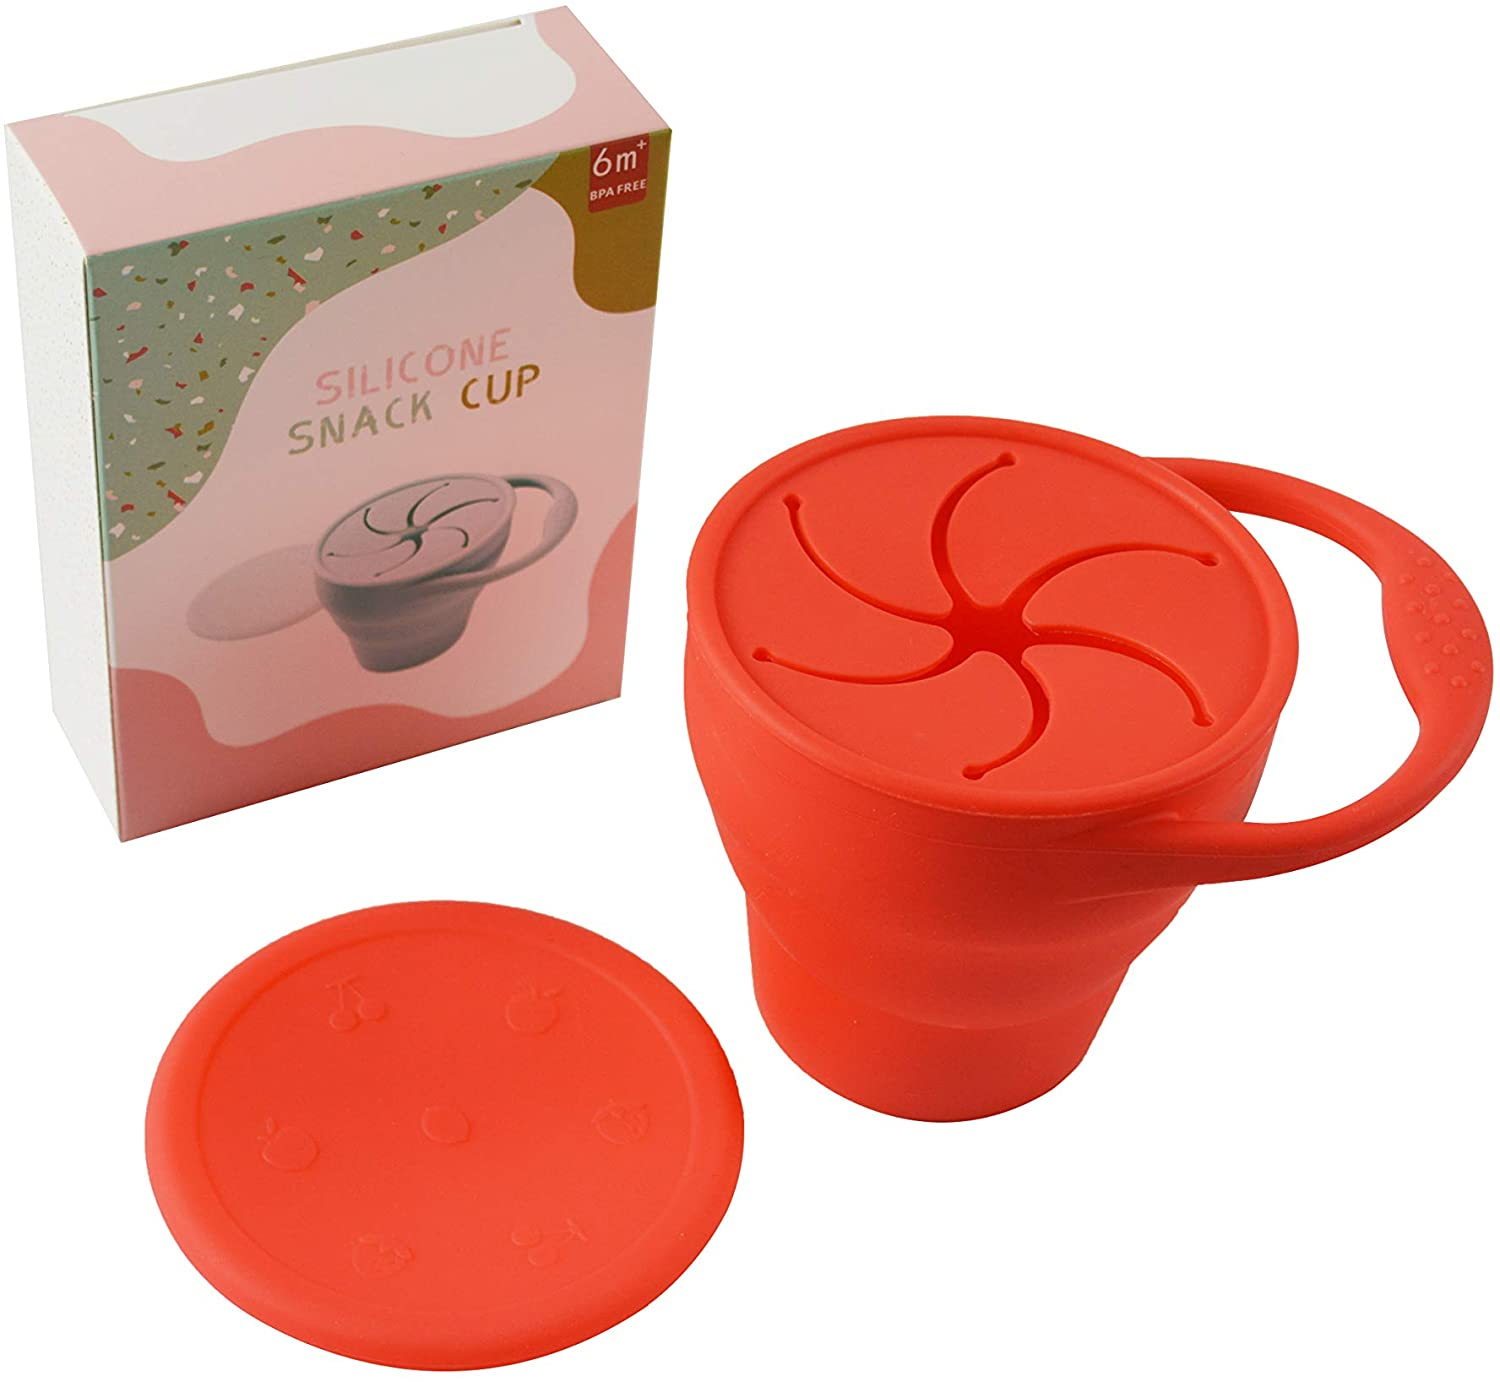 Snack Cup Collapsible Spill Proof Silicone Snack Container (Red)